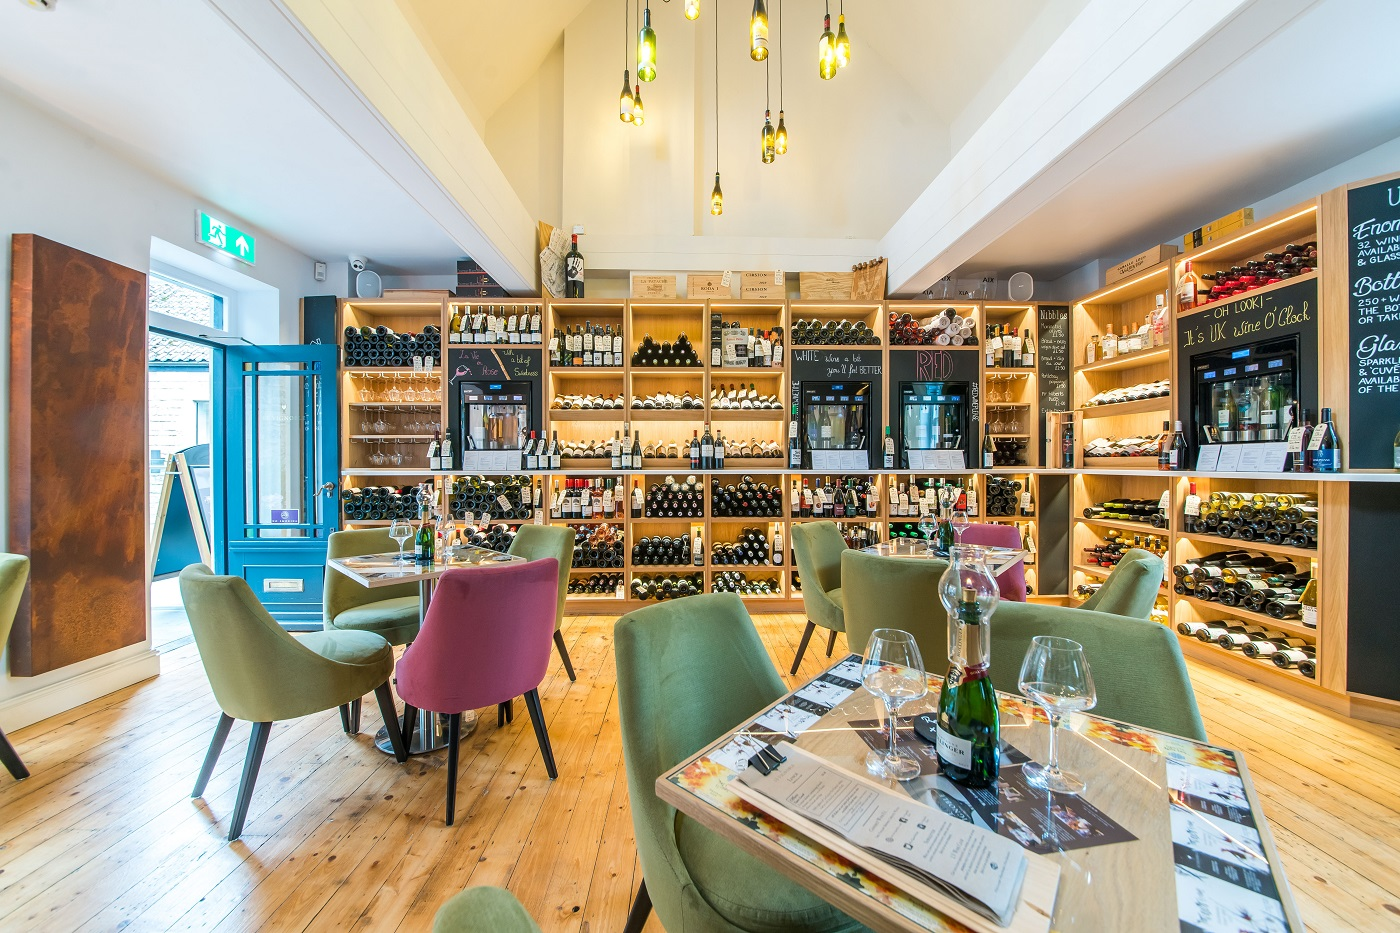 Le Vignoble wine lounge at Milsom Place